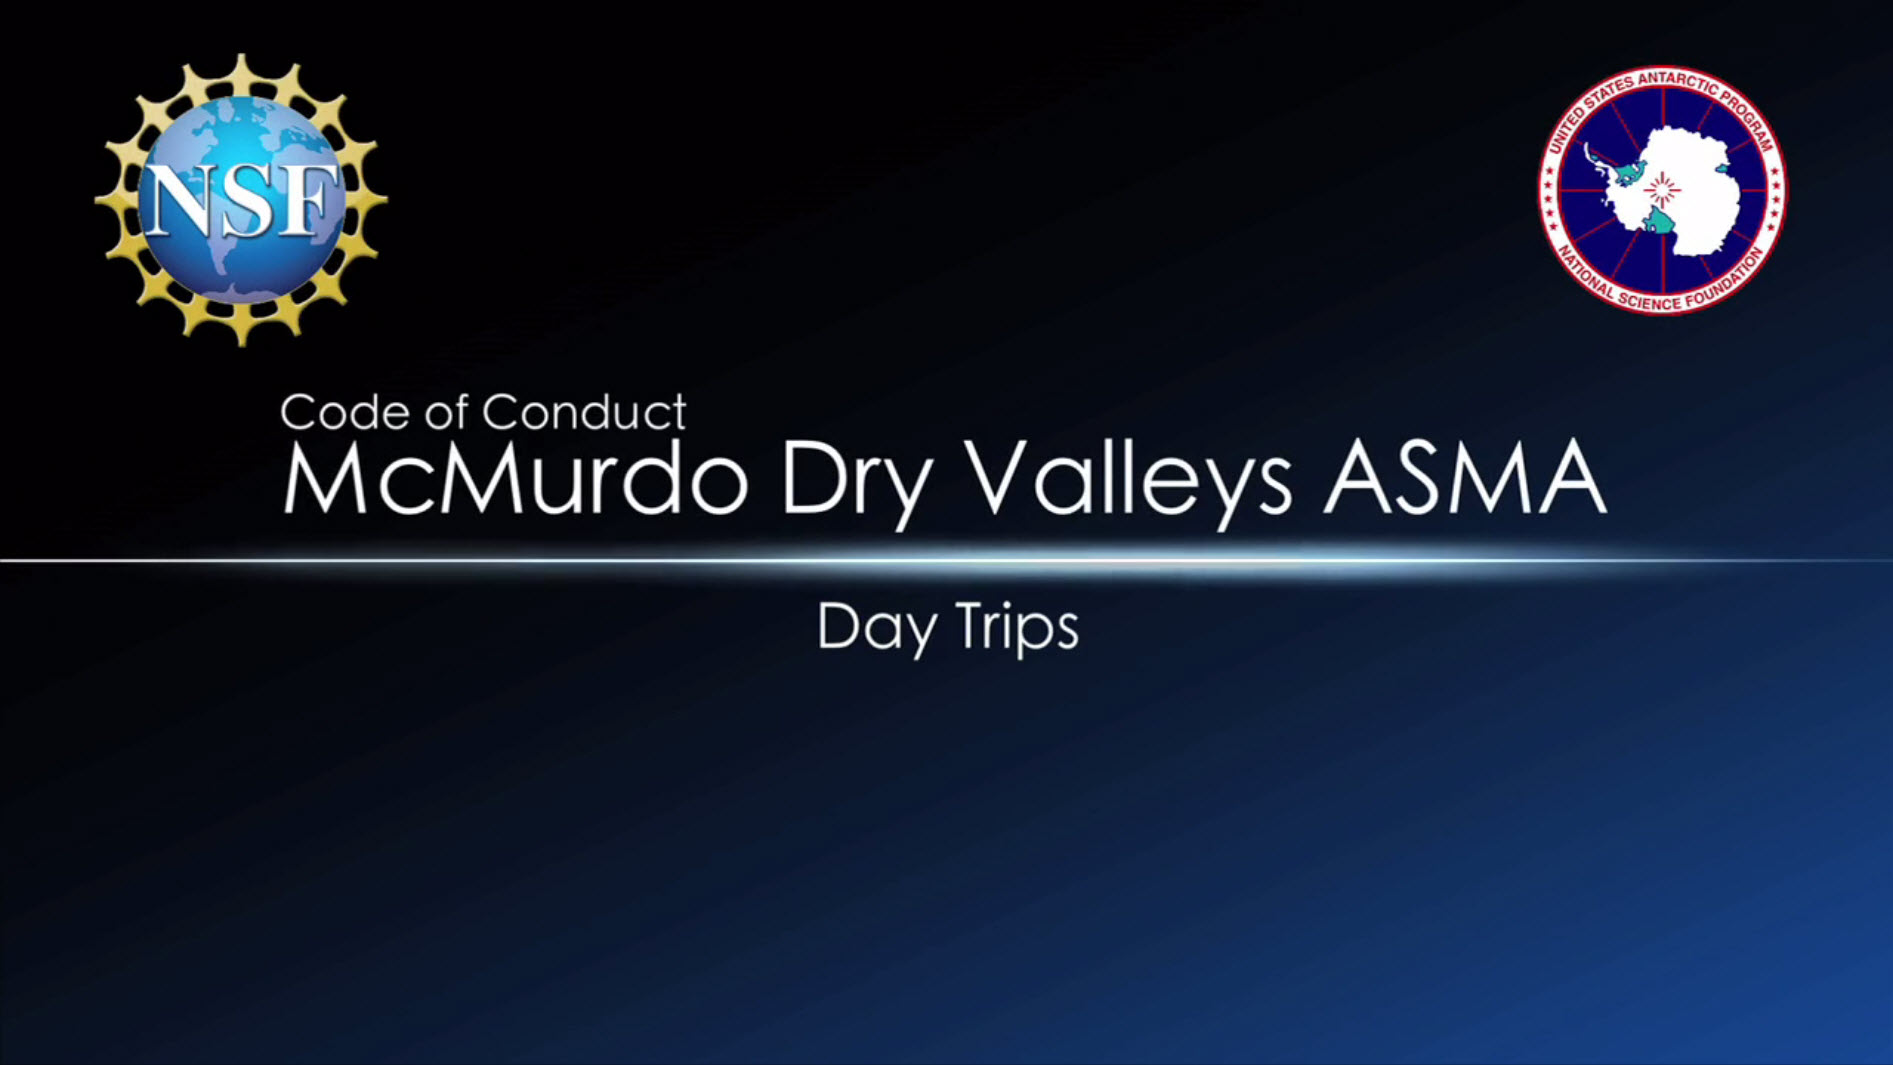 McMurdo Dry Valleys ASMA Training - Day Trips Preview